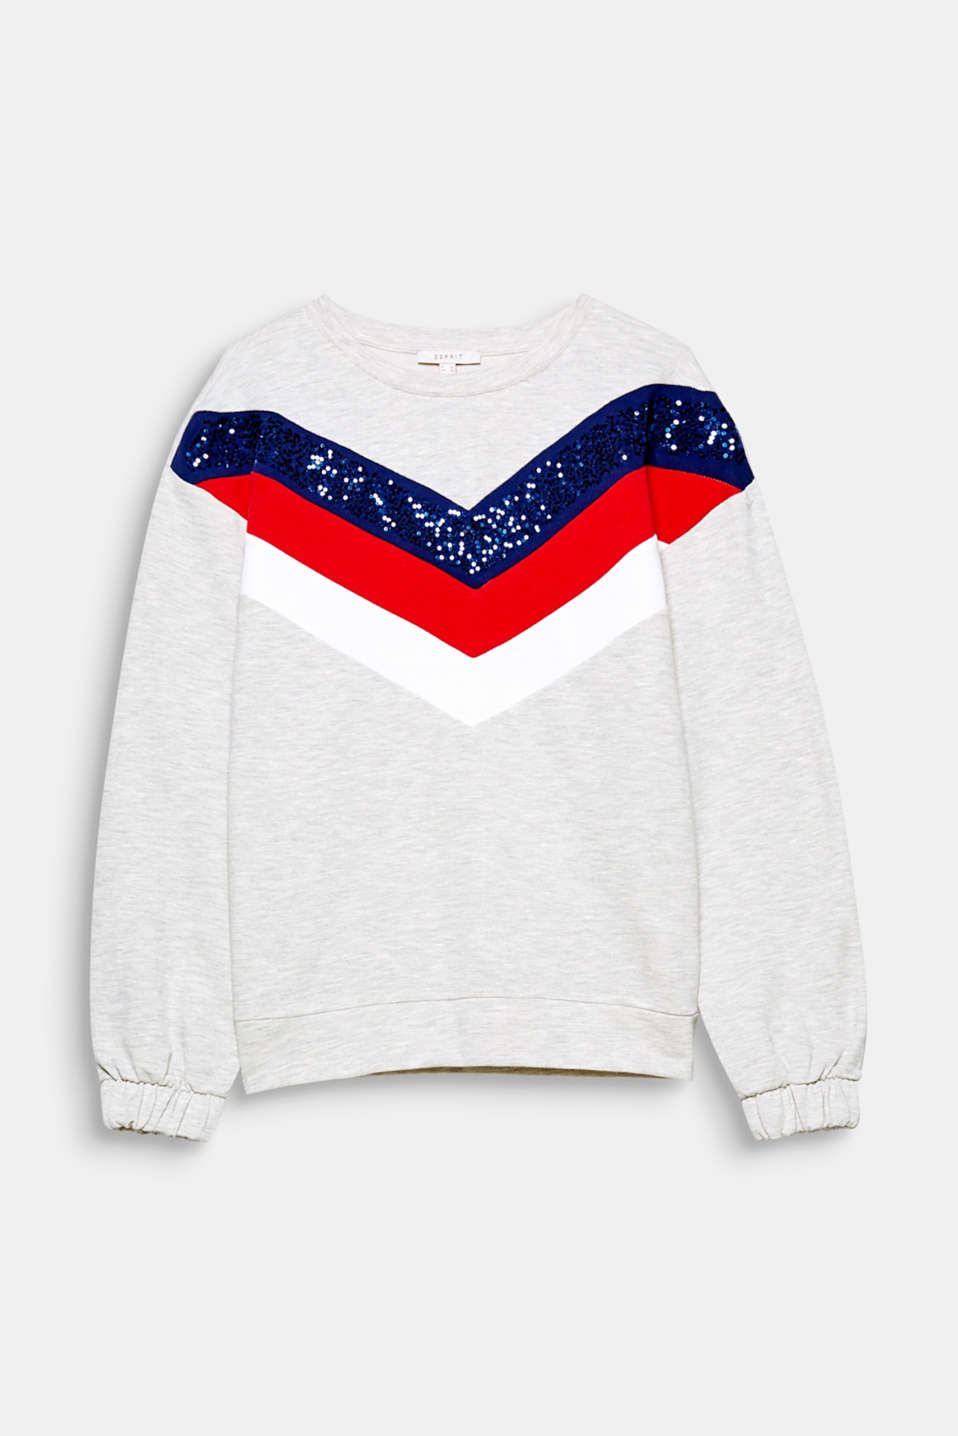 For your cool sportswear look! Colour blocking and sequins decorate this sporty sweatshirt.